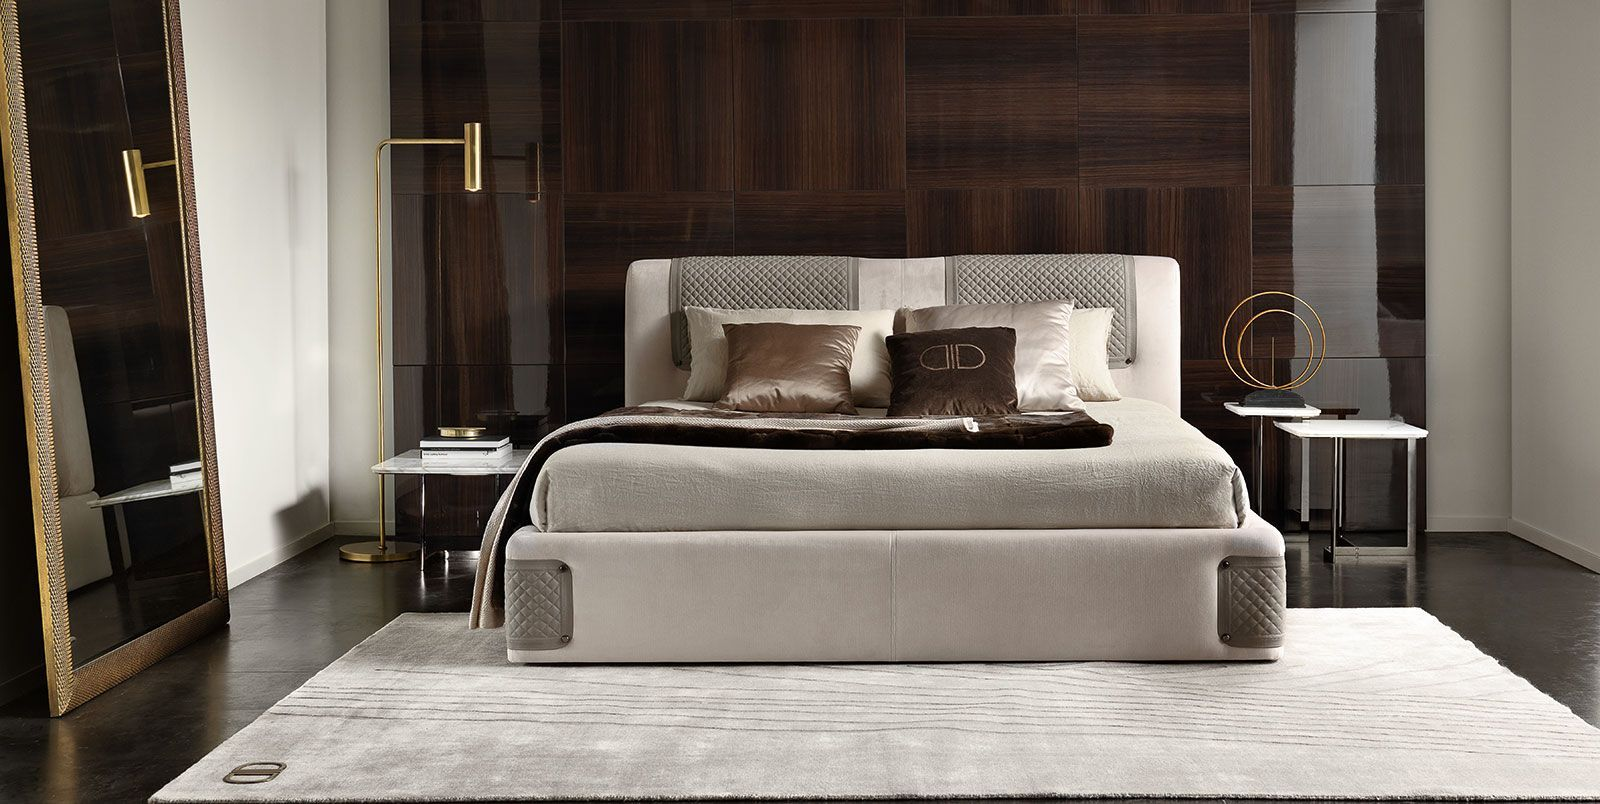 Get the best selection of design ideas to improve your home ambience with us see more clicking on image luxurycontemporarydecor also inspirations bedroom contemporary decor rh pinterest